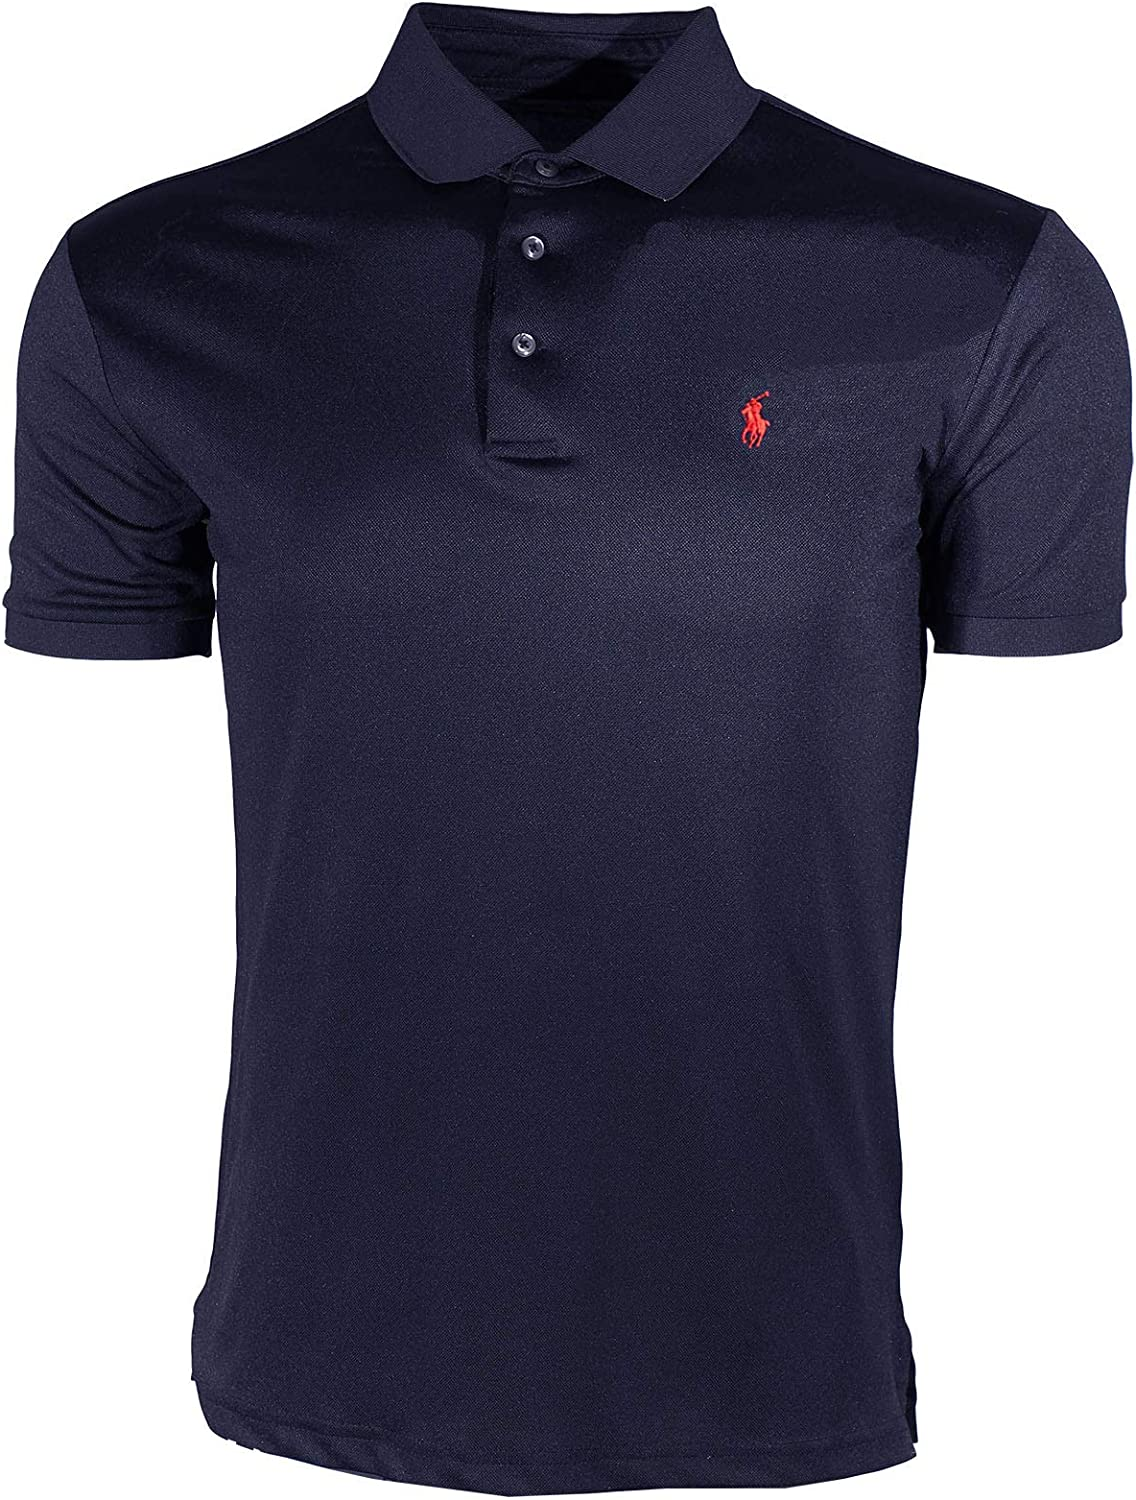 Polo Attention brand Ralph Lauren Performance Today's only Mens Shirts